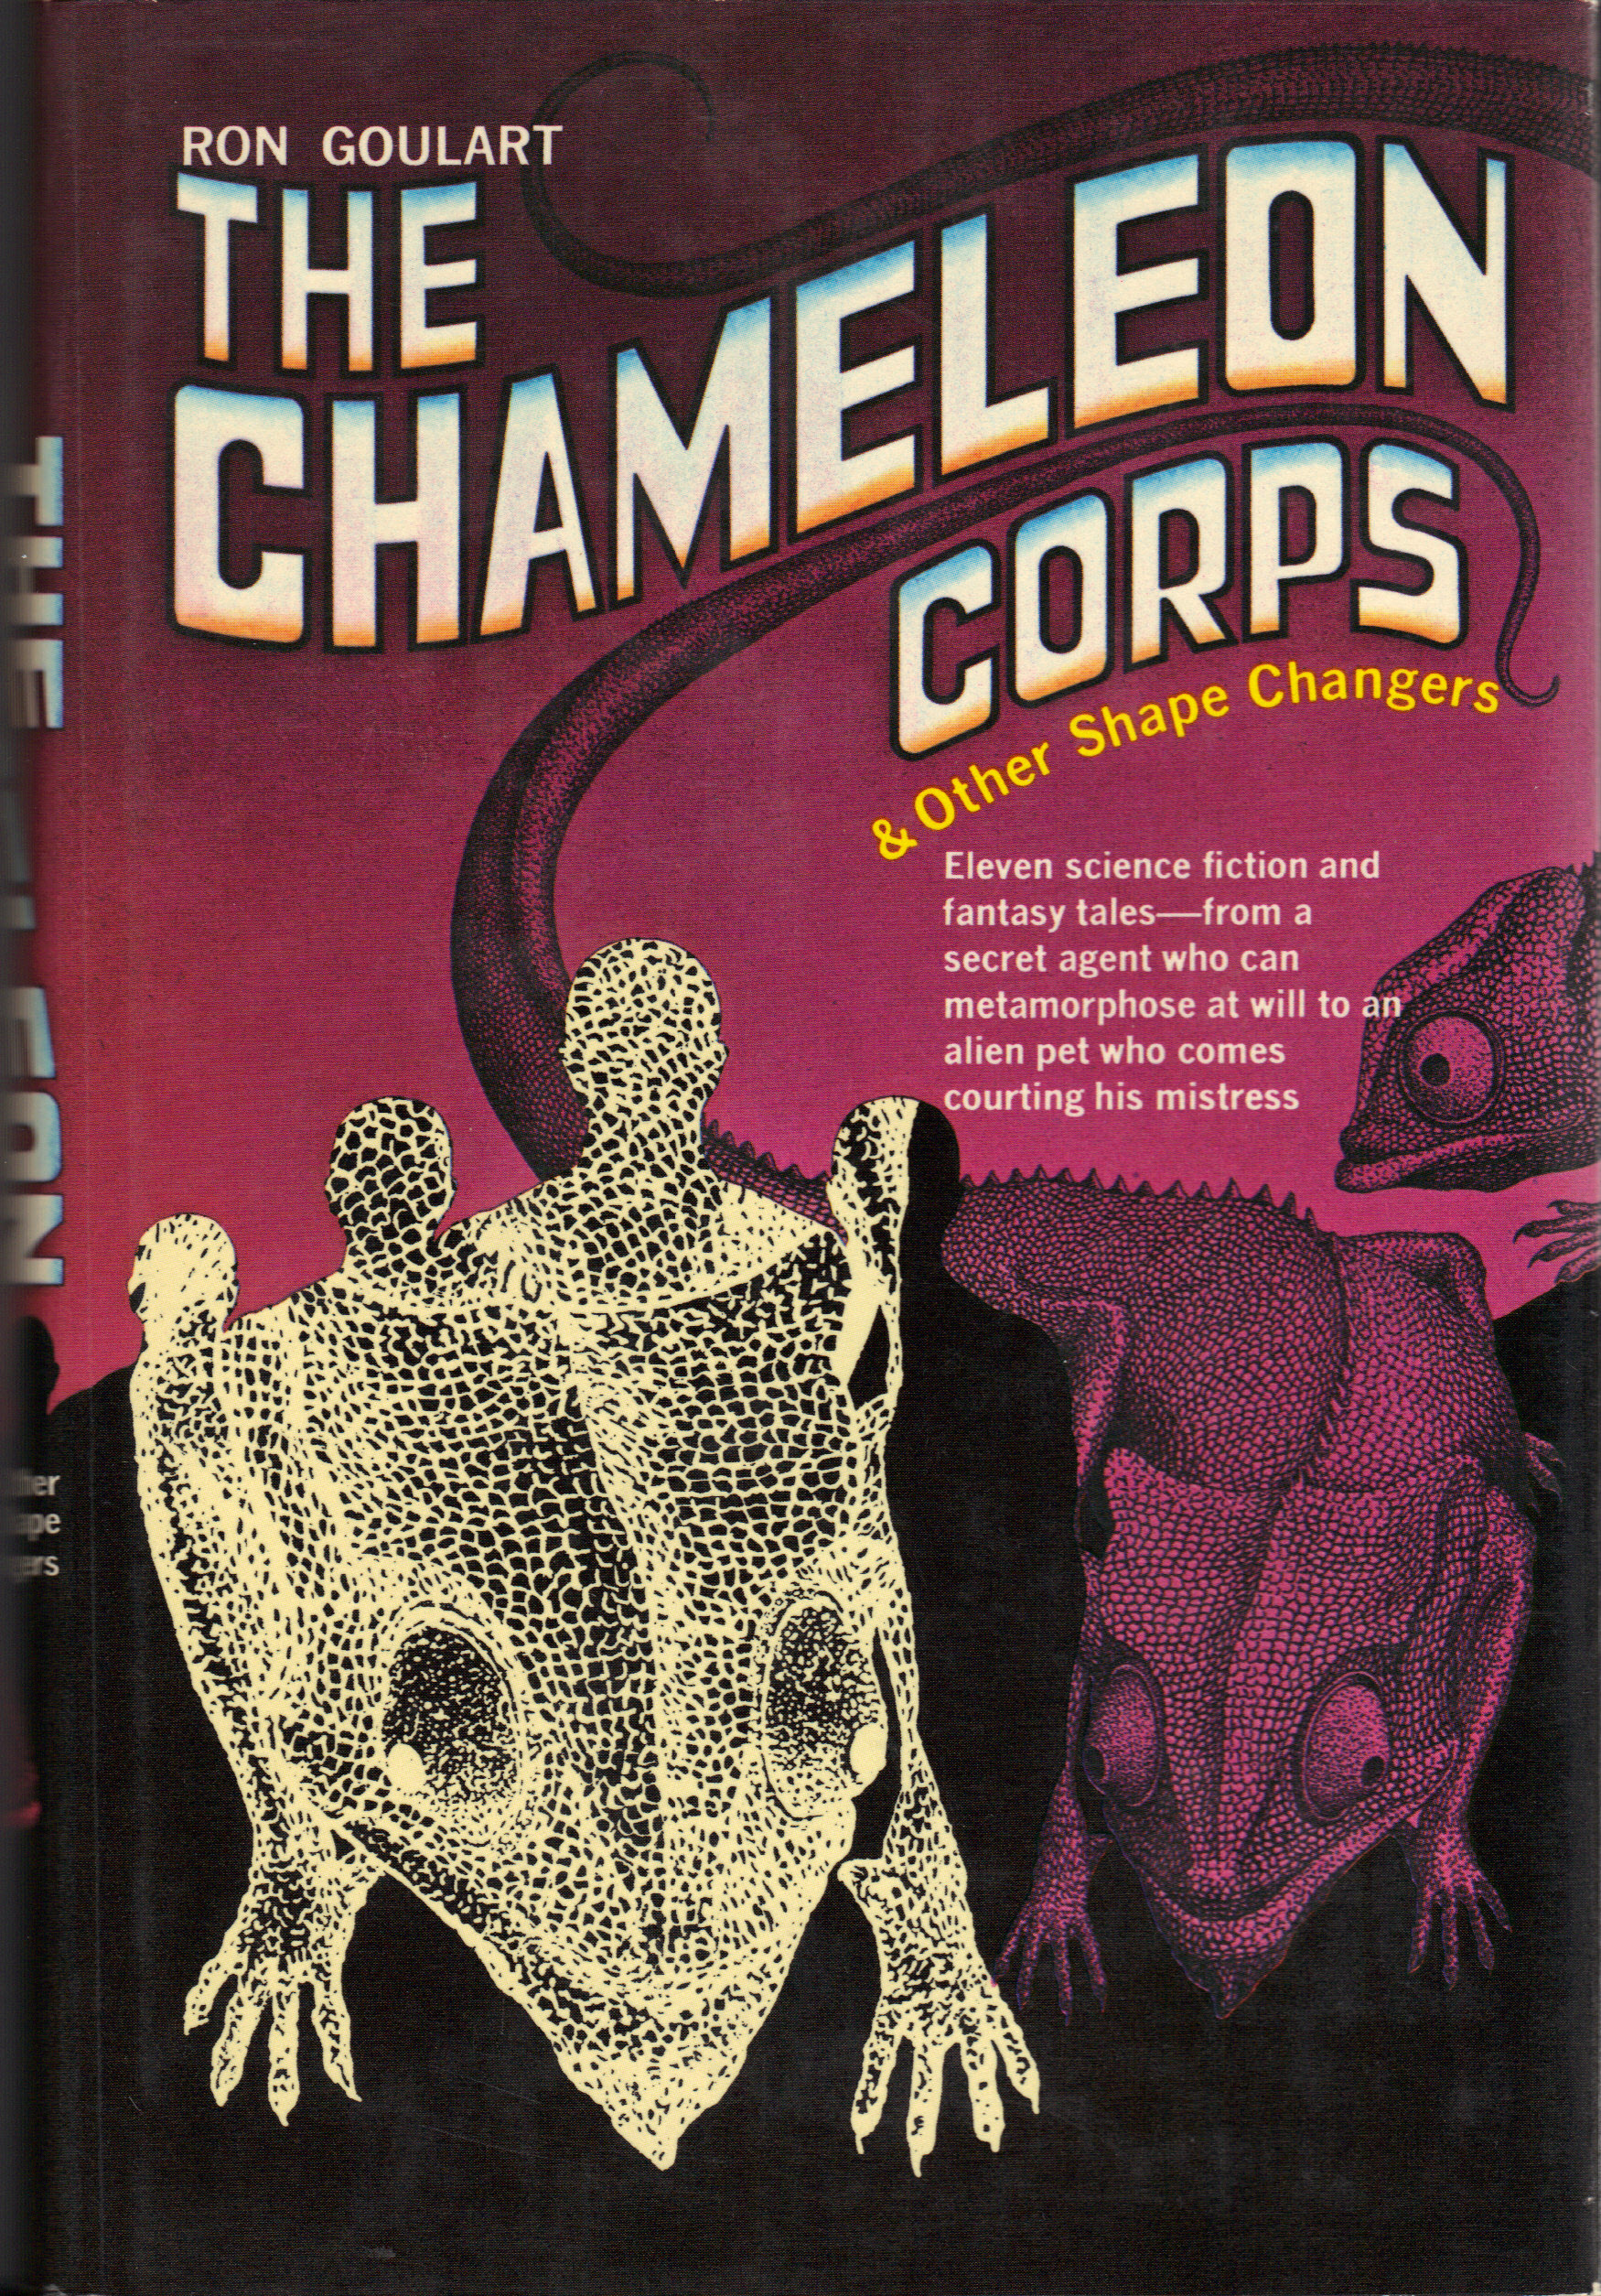 Image for CHAMELEON CORPS AND OTHER SHAPE CHANGERS